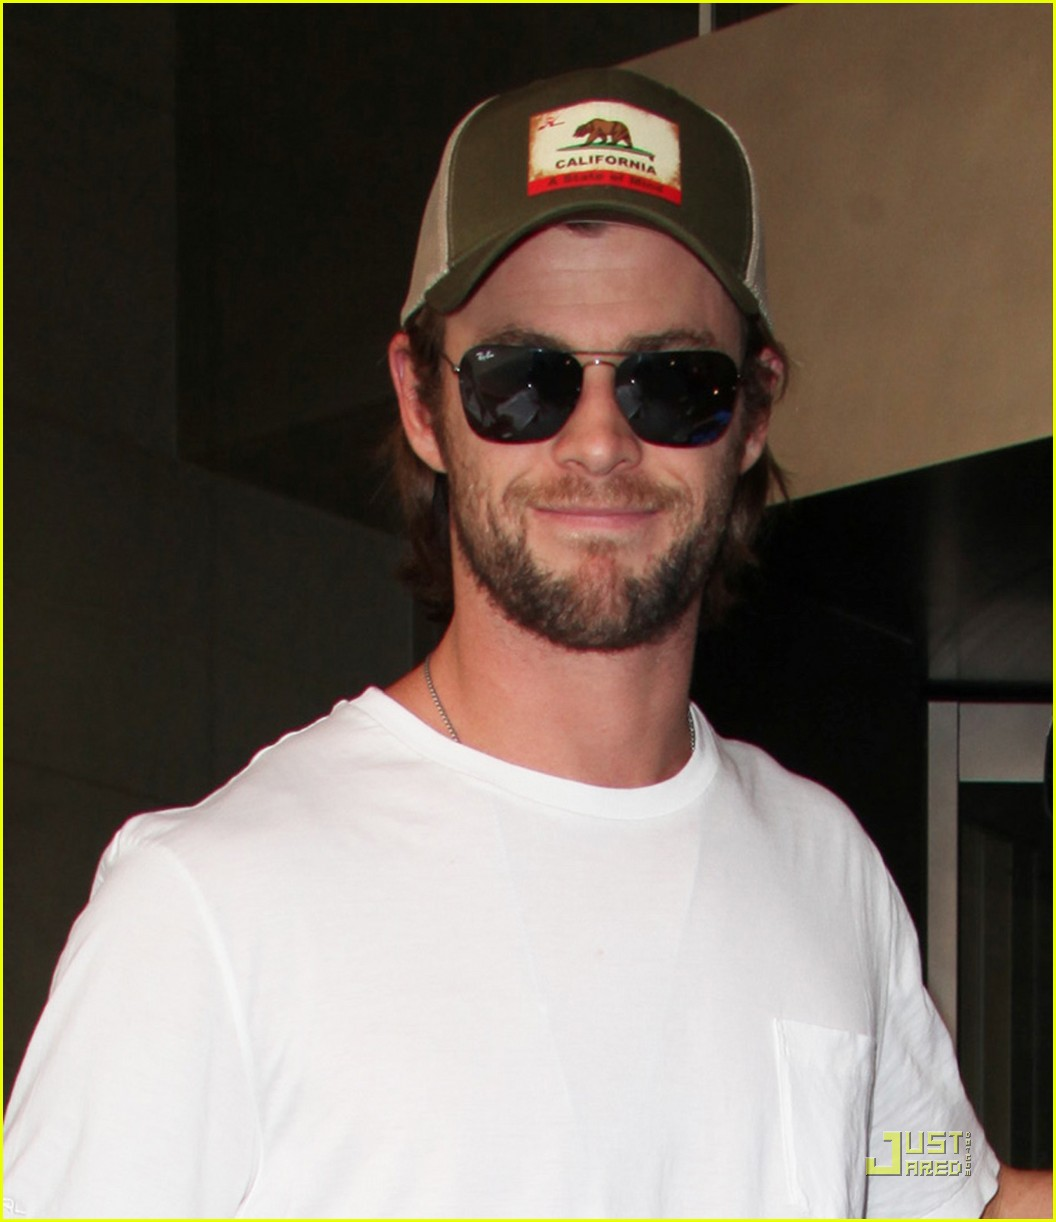 Chris Hemsworth: First Day on 'Avengers' was 'Pretty Crazy' - chris-hemsworth photo